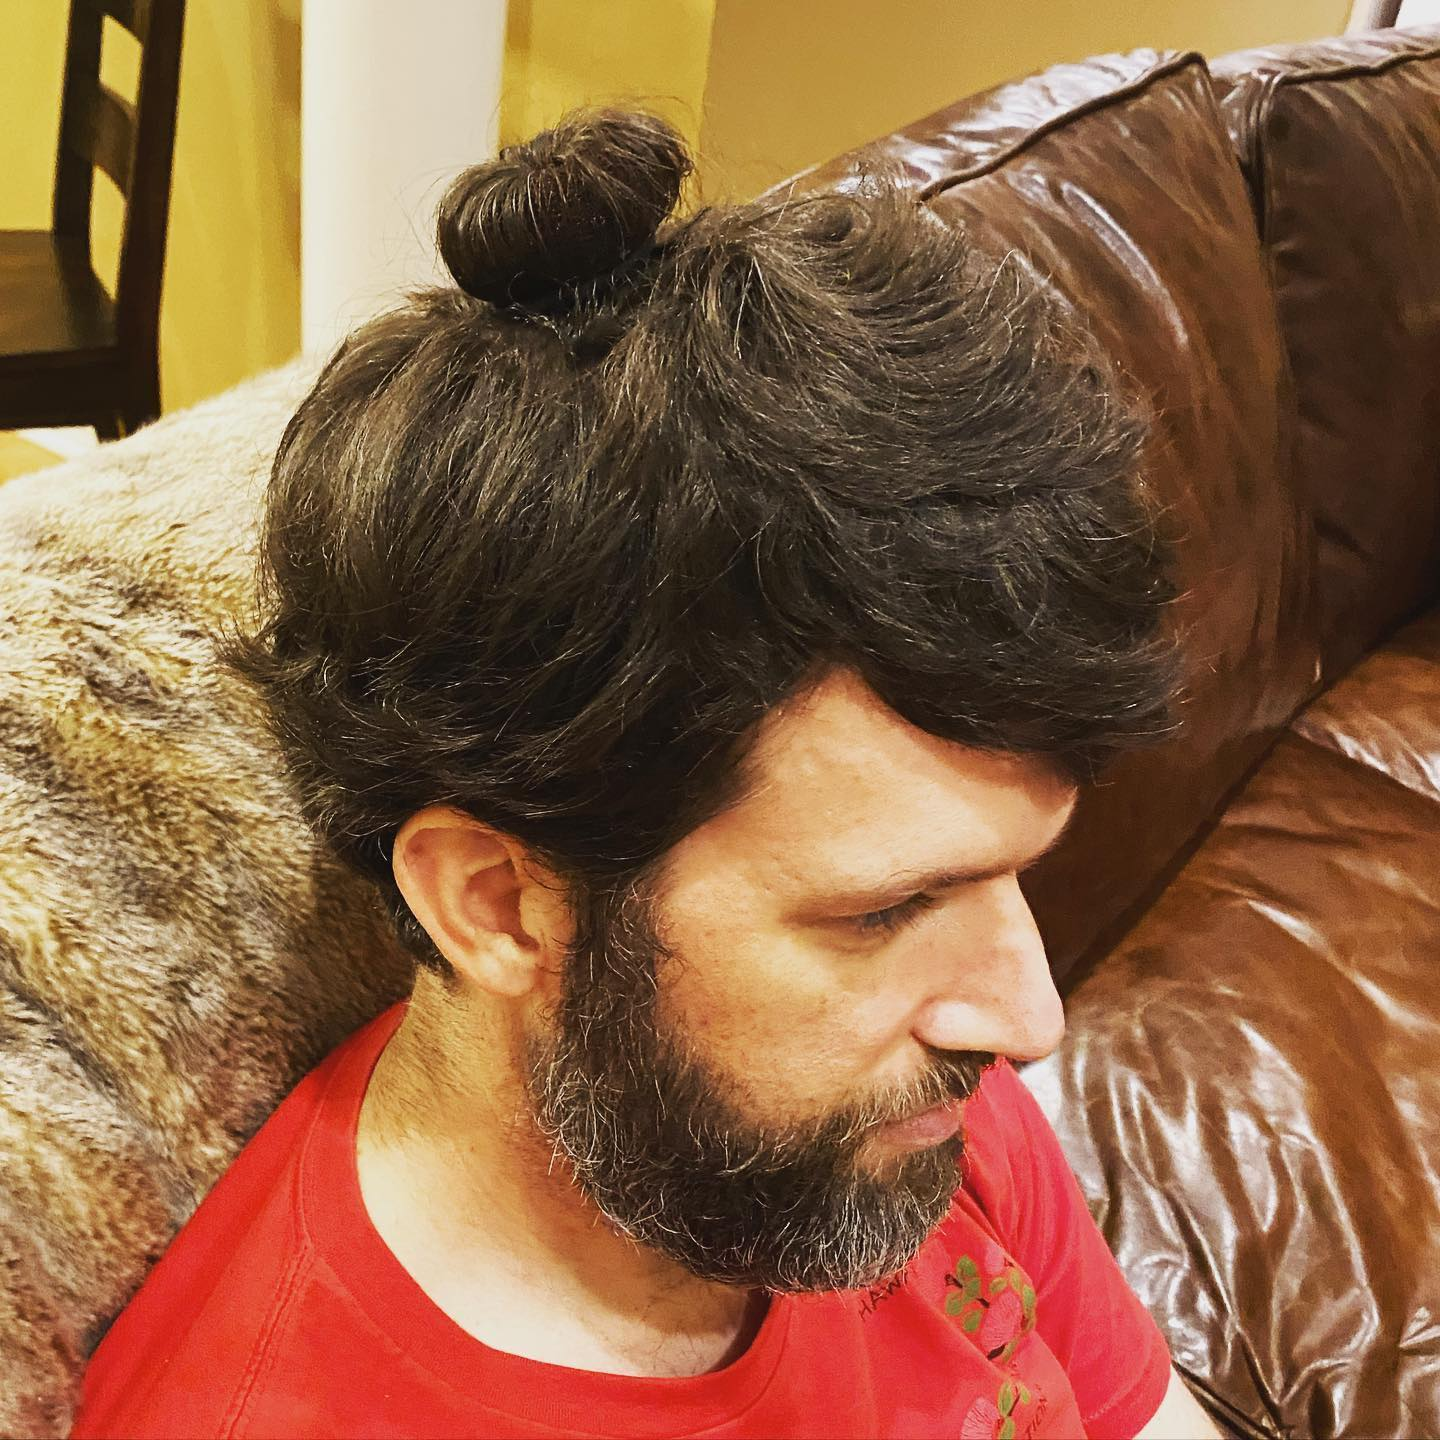 """Sara asked if she could do my hair with the new hair donuts she got for her birthday. The resulting """"man bun"""" was not a look I was ever hoping to see for myself. #family #manbun"""